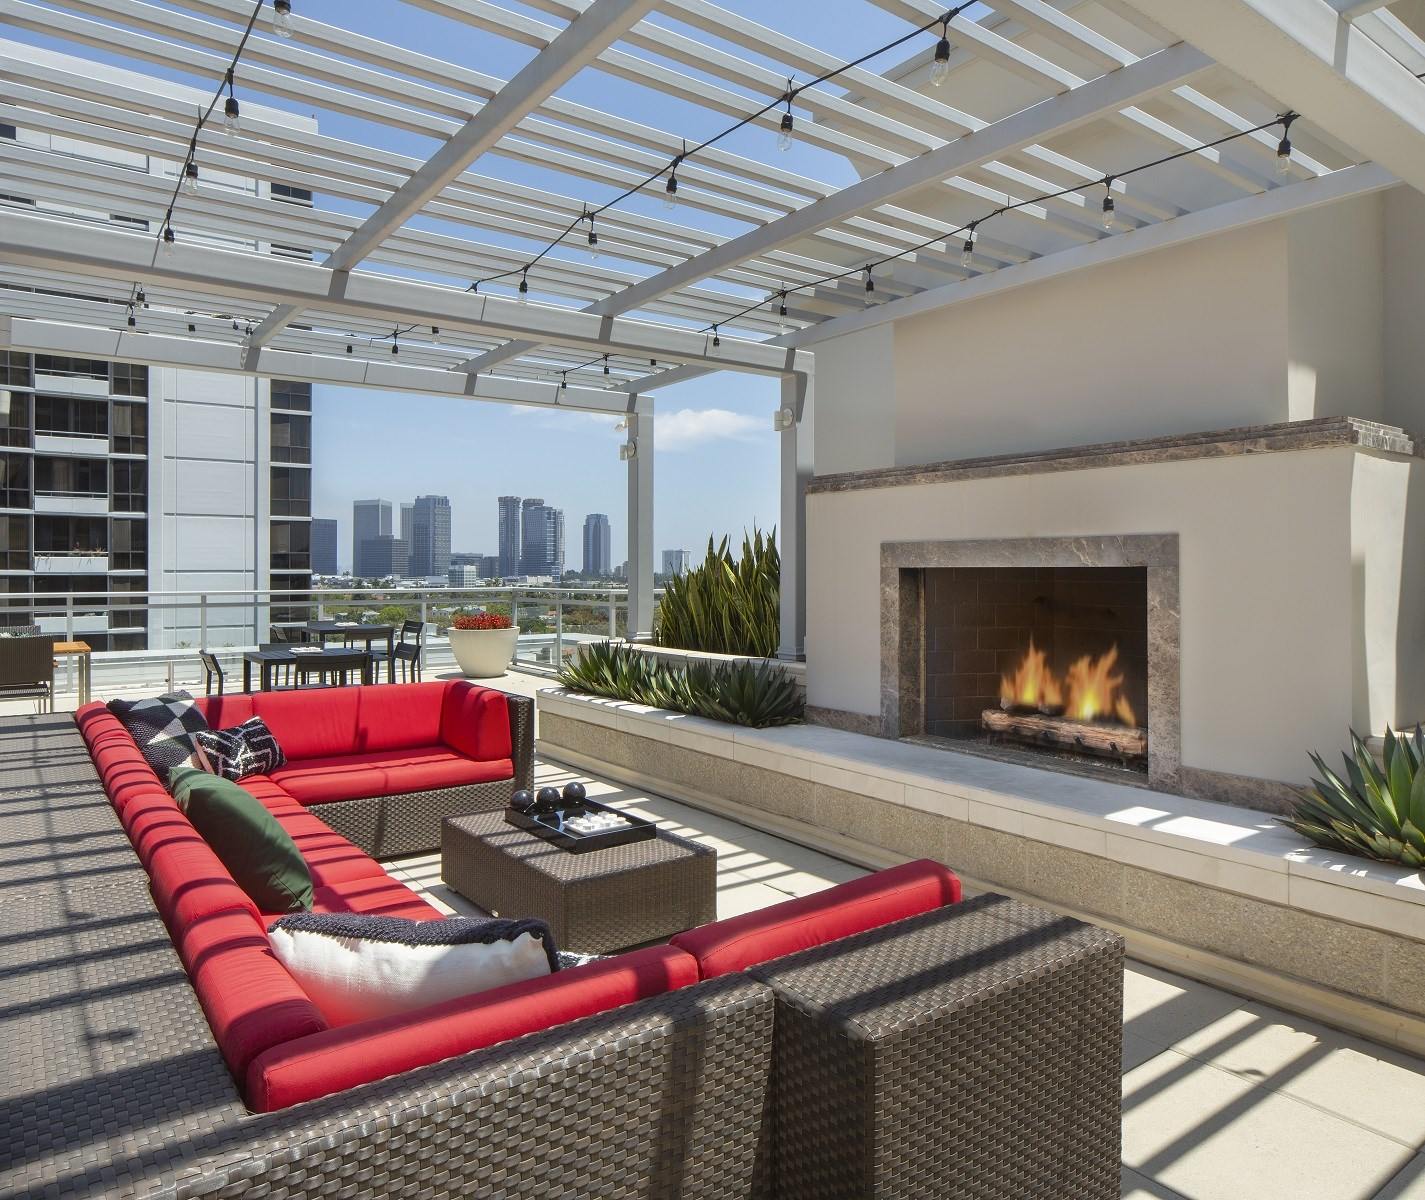 Westwood-Luxury-Apartments-Wilshire-Victoria-Rooftop-Lounge-Couch-Fireplace